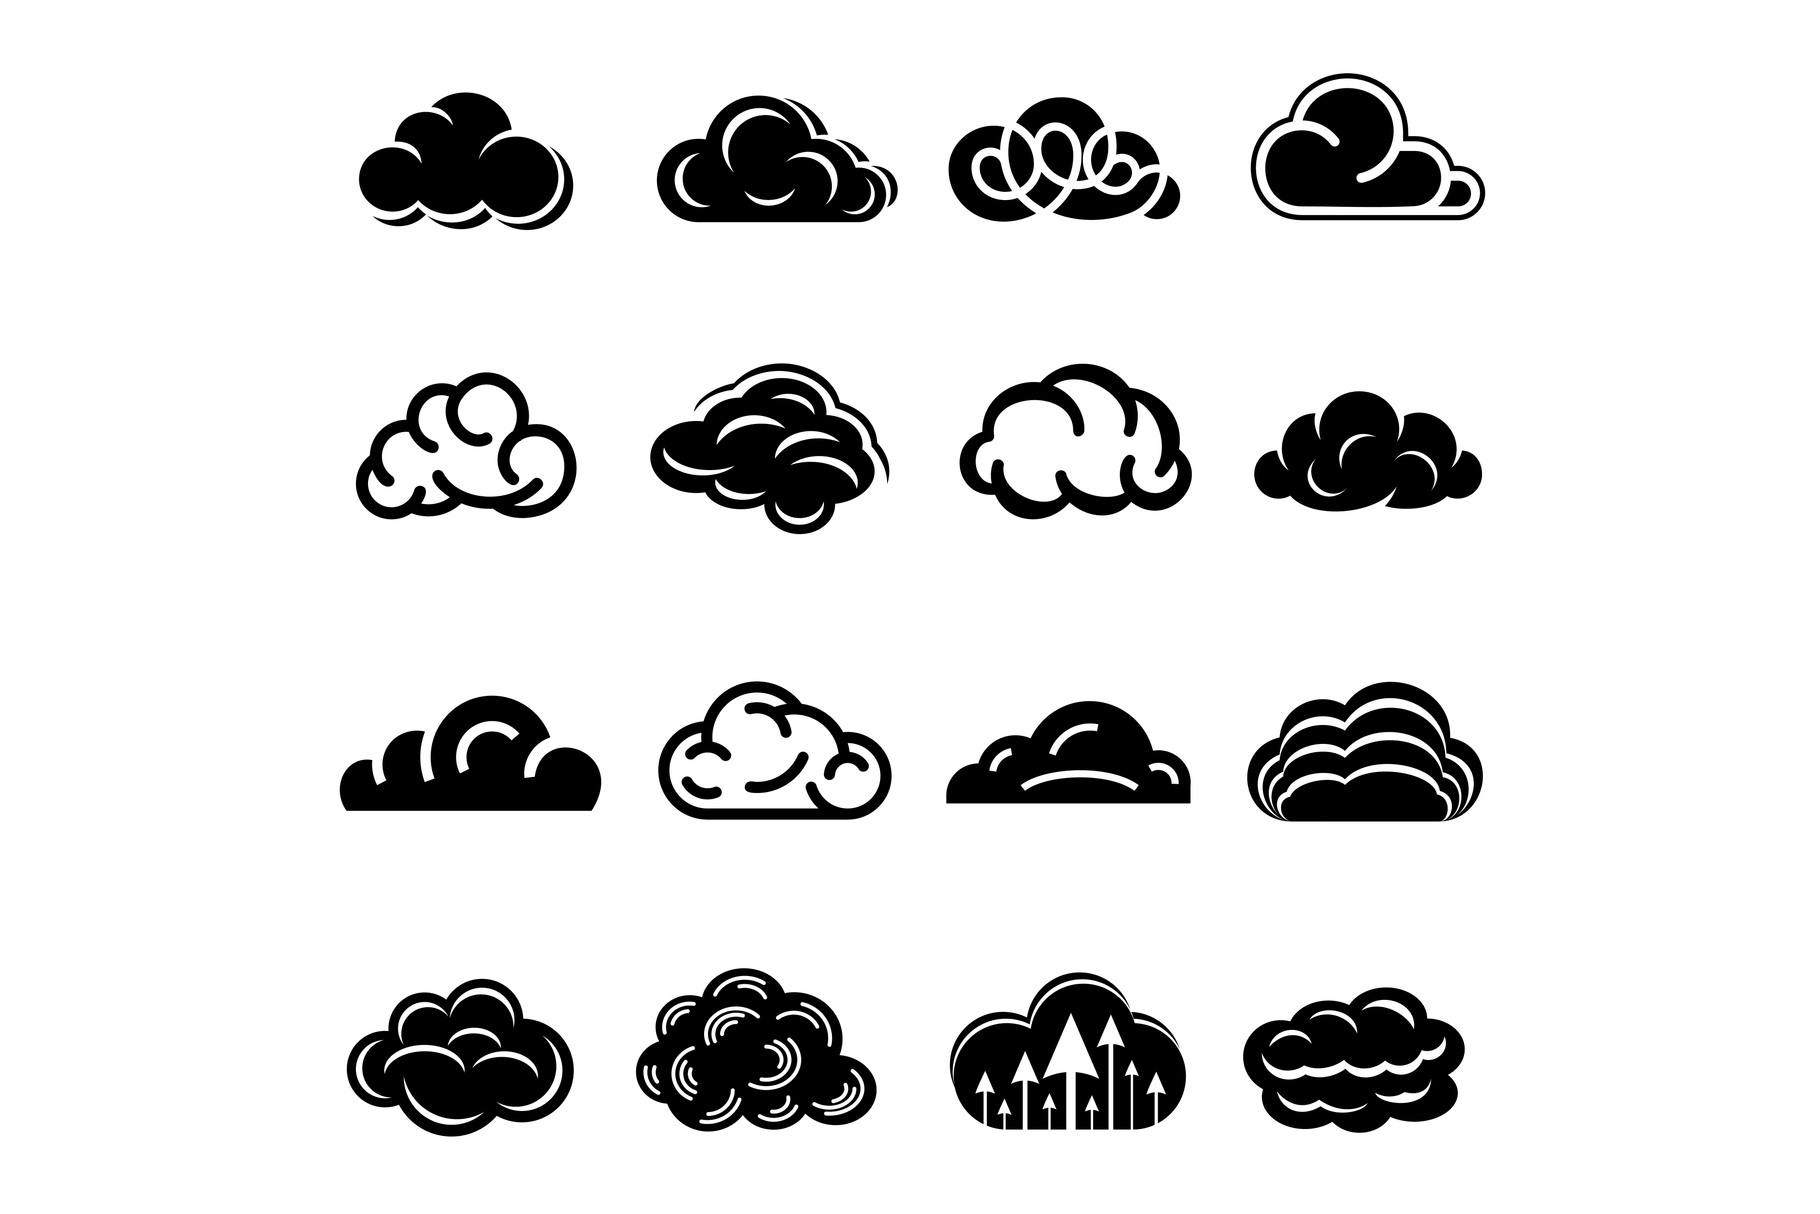 Cloud icons set, simple style example image 1